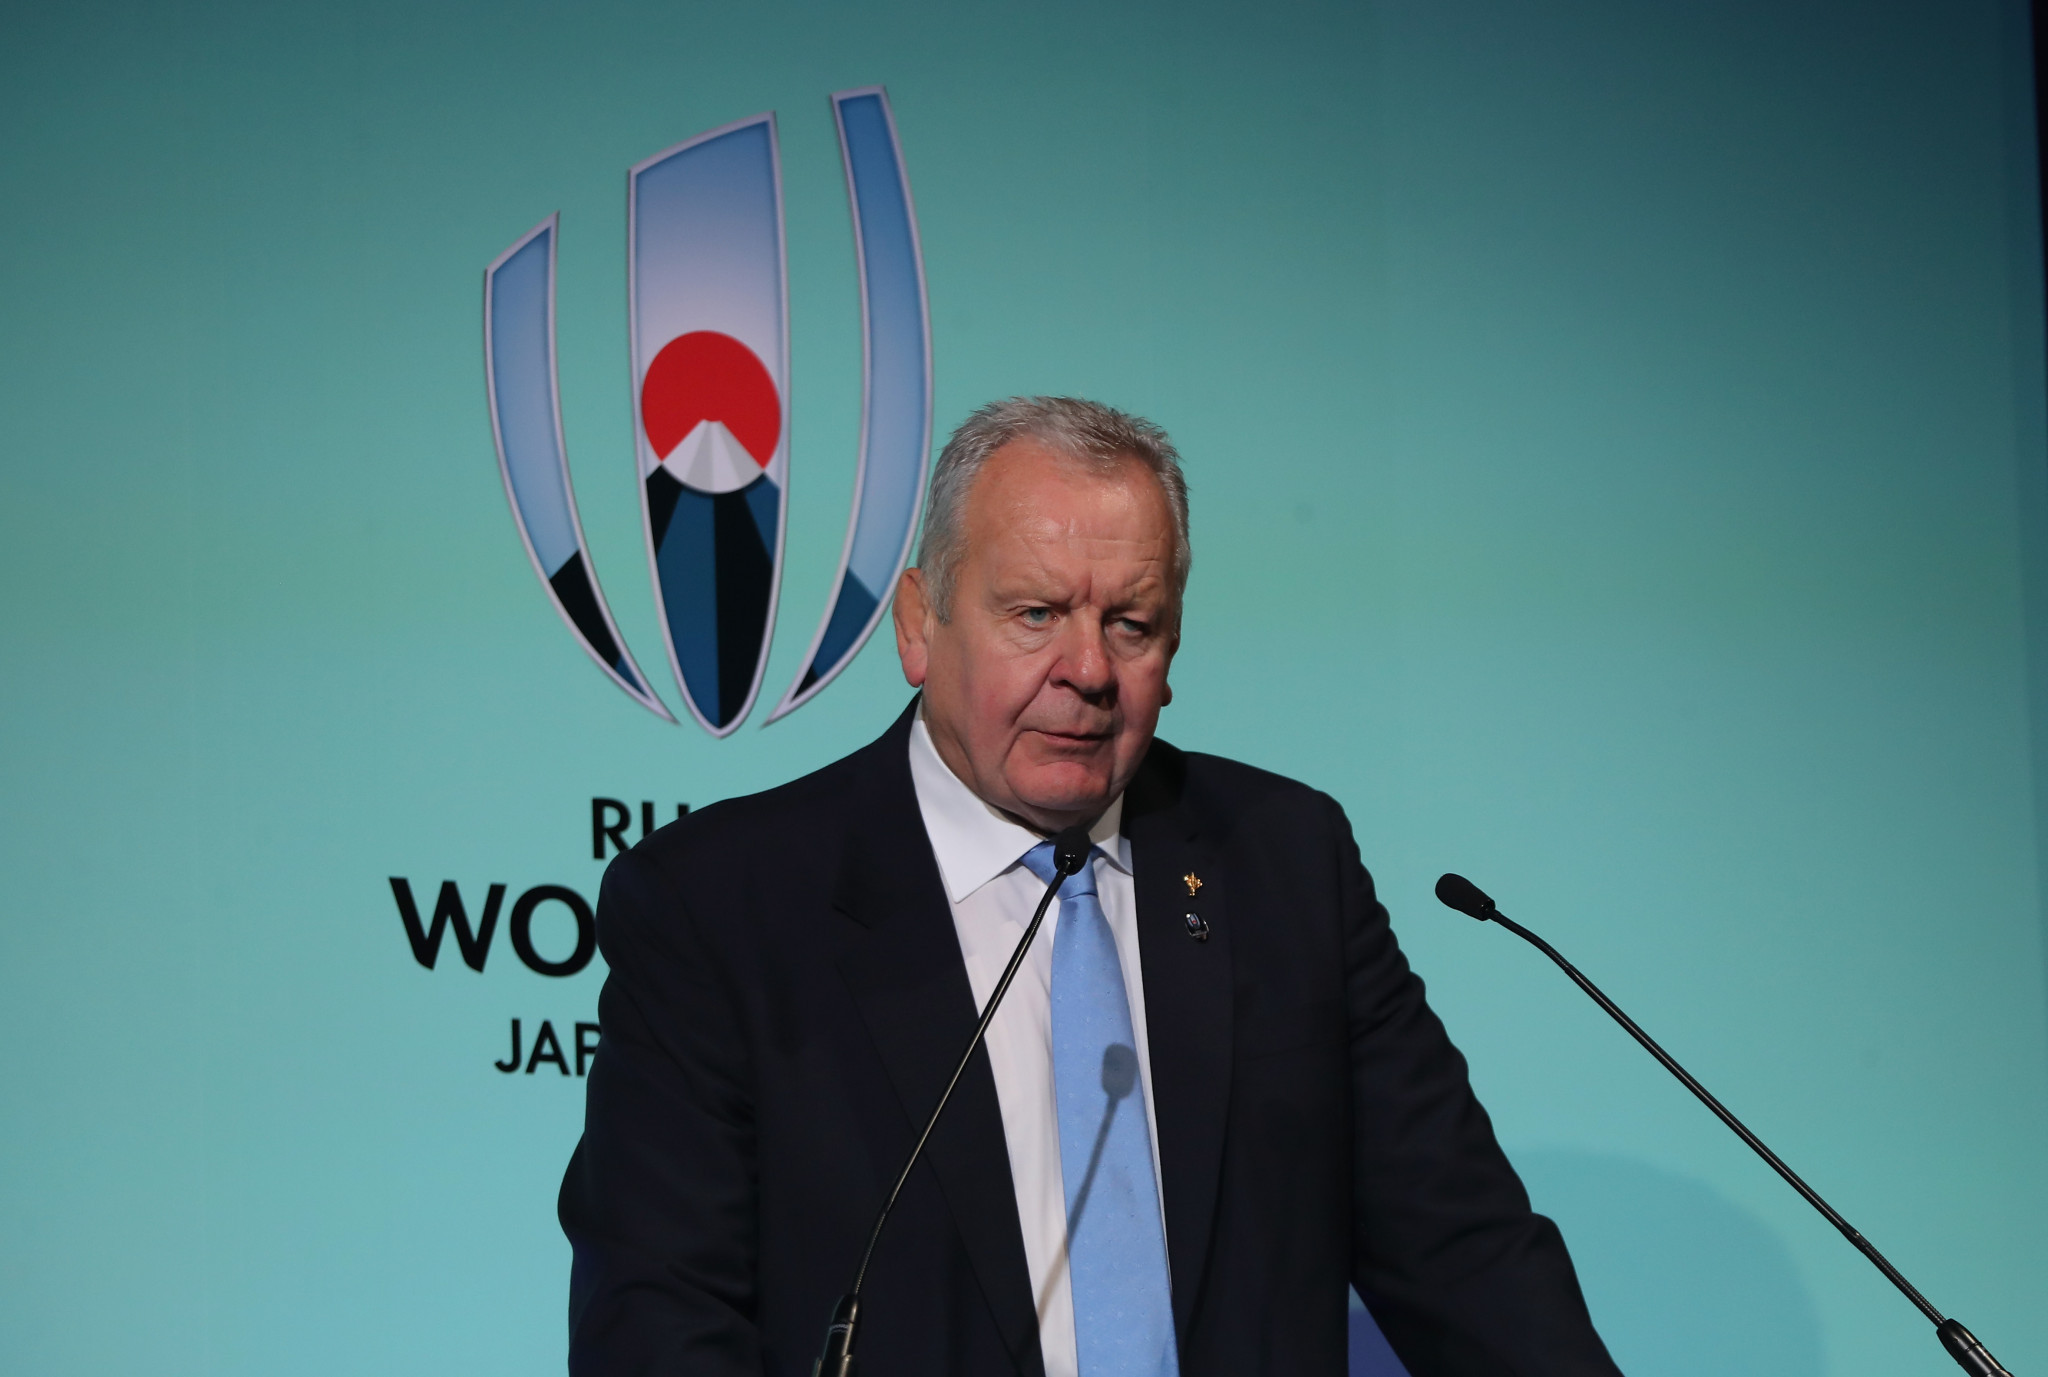 Bill Beaumont has claimed World Rugby has undergone great change in the last two years ©Getty Images